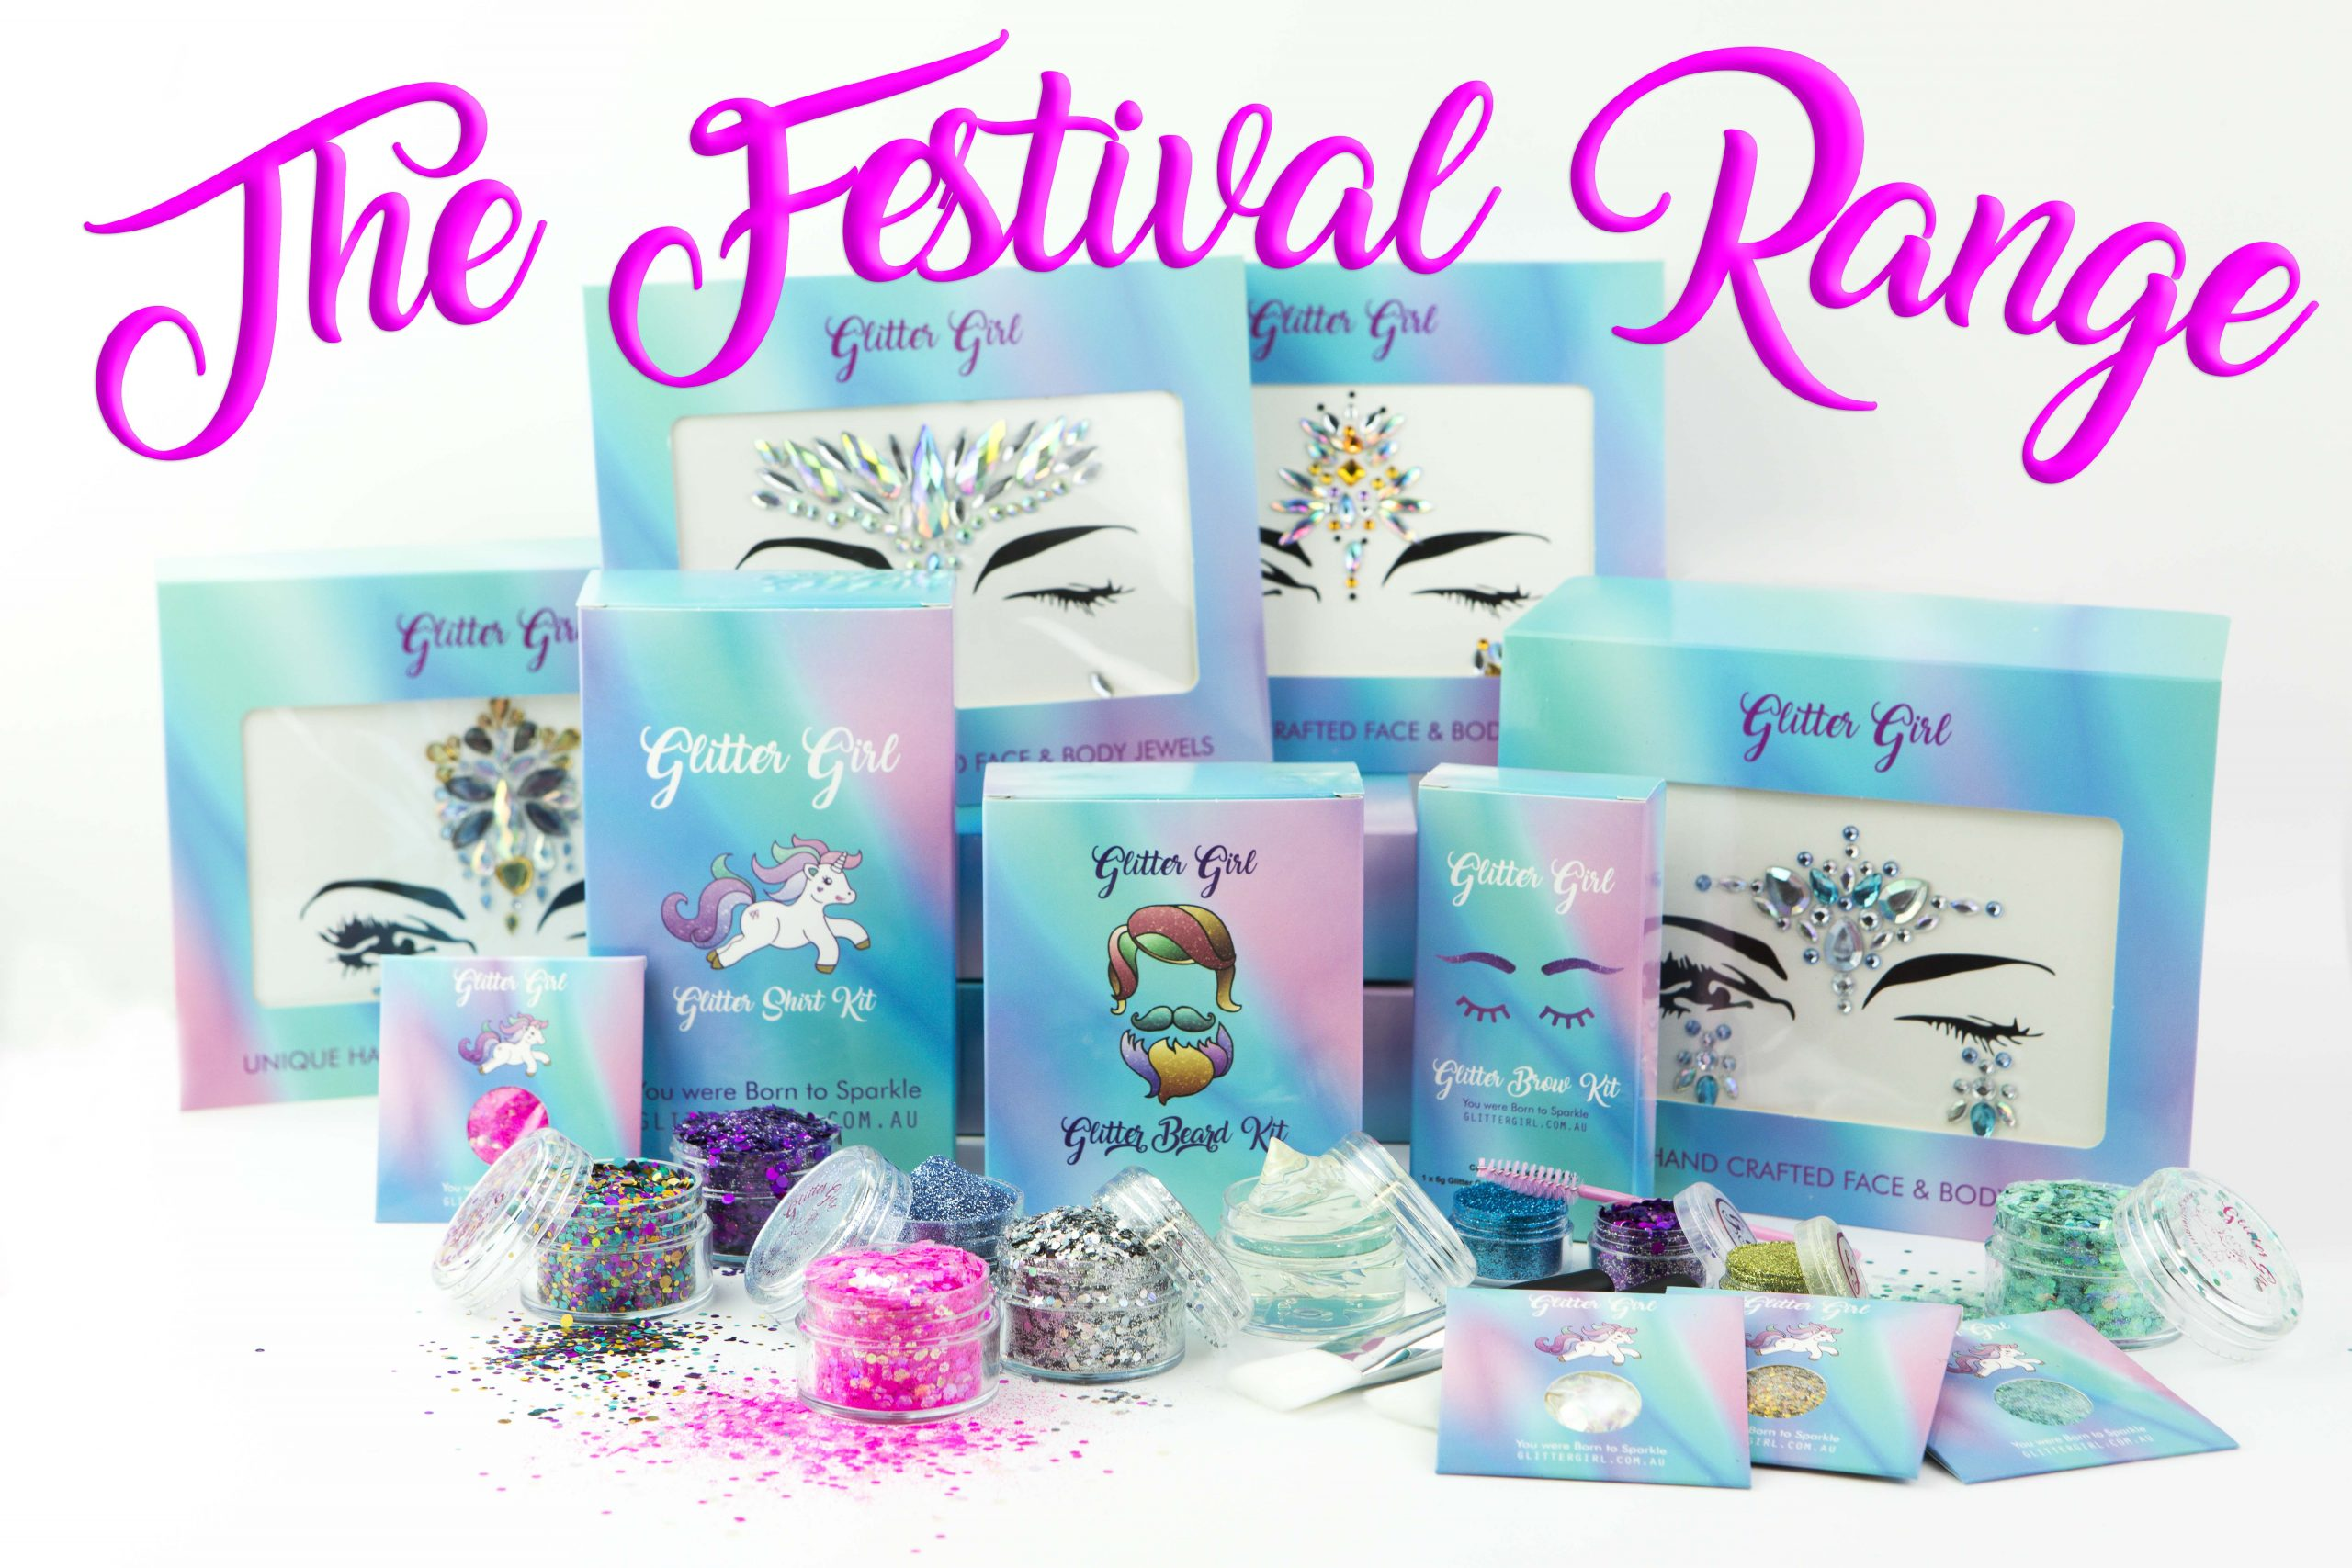 The Exclusive Glitter Girl Festival Range